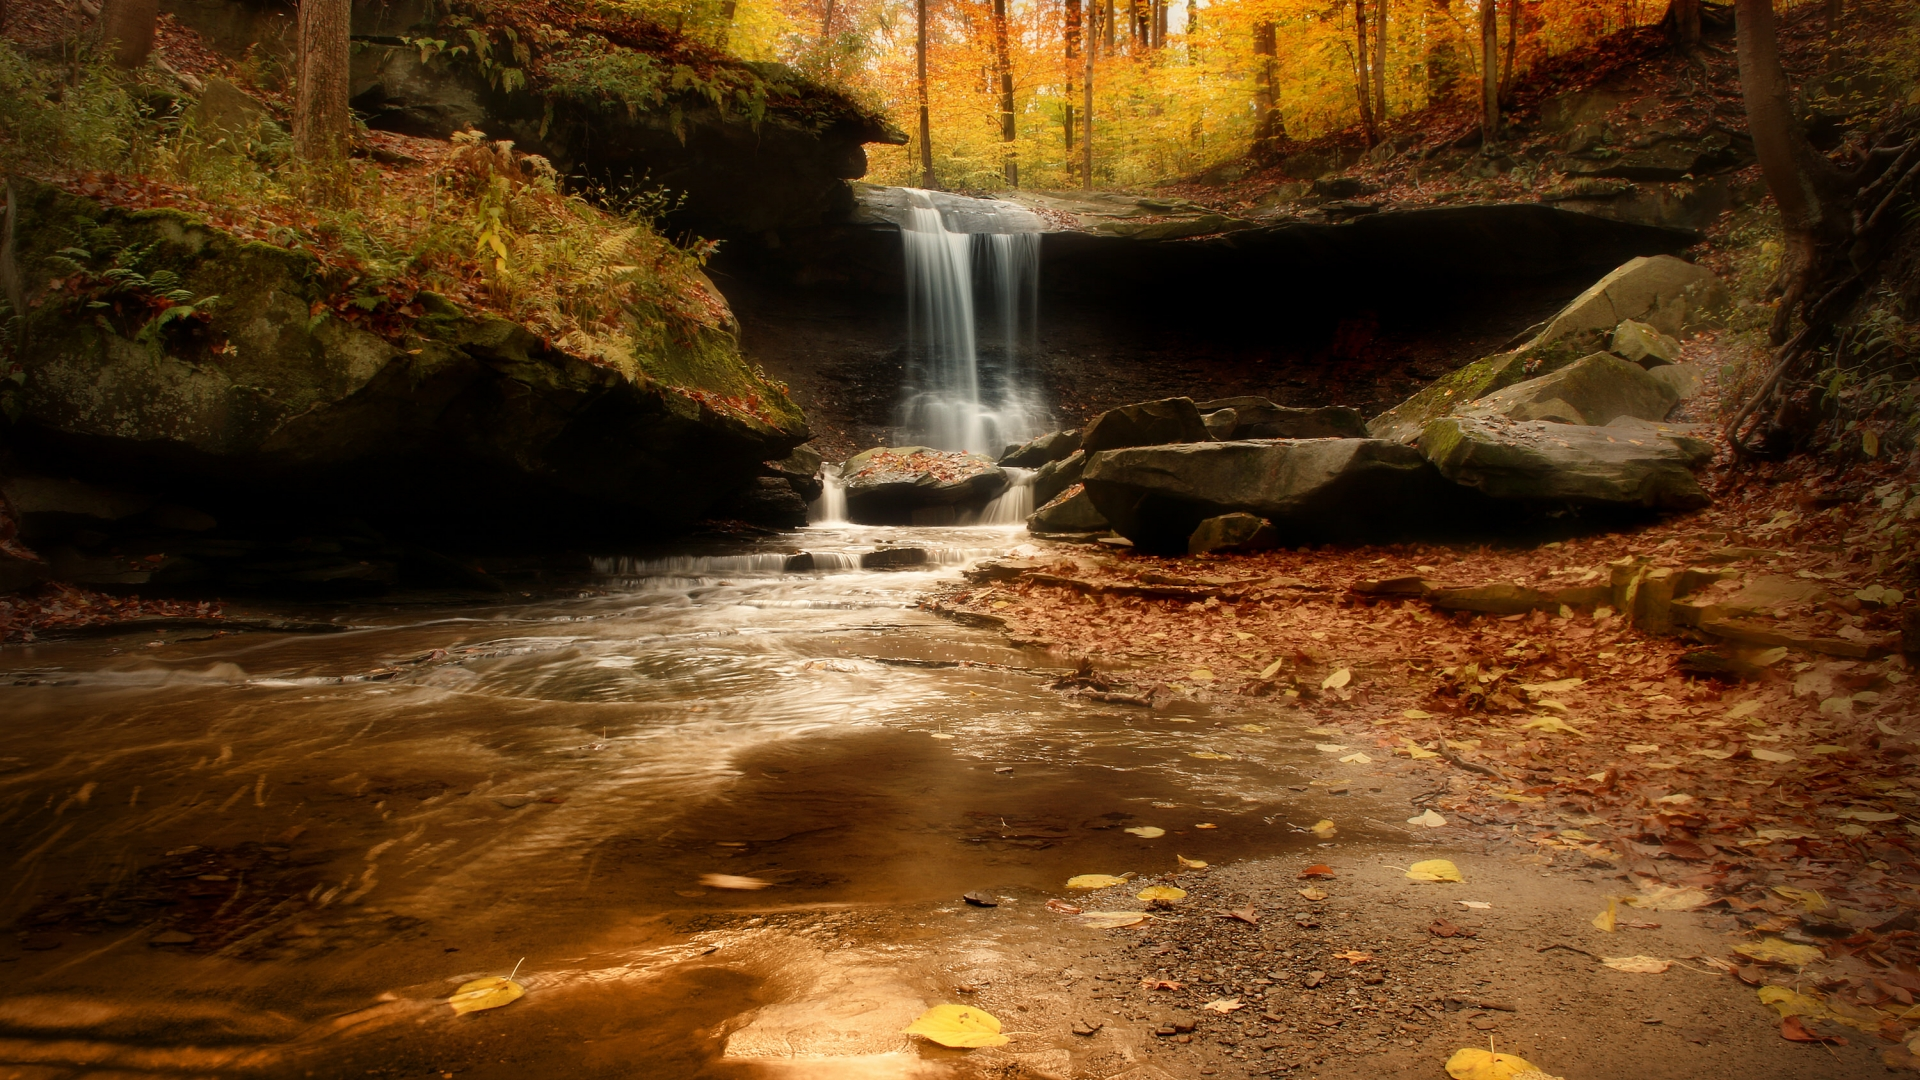 Delicate waterfall surrounded by golden lit autumn forest of greens, yellows, and reds at Cuyahoga Valley National Park